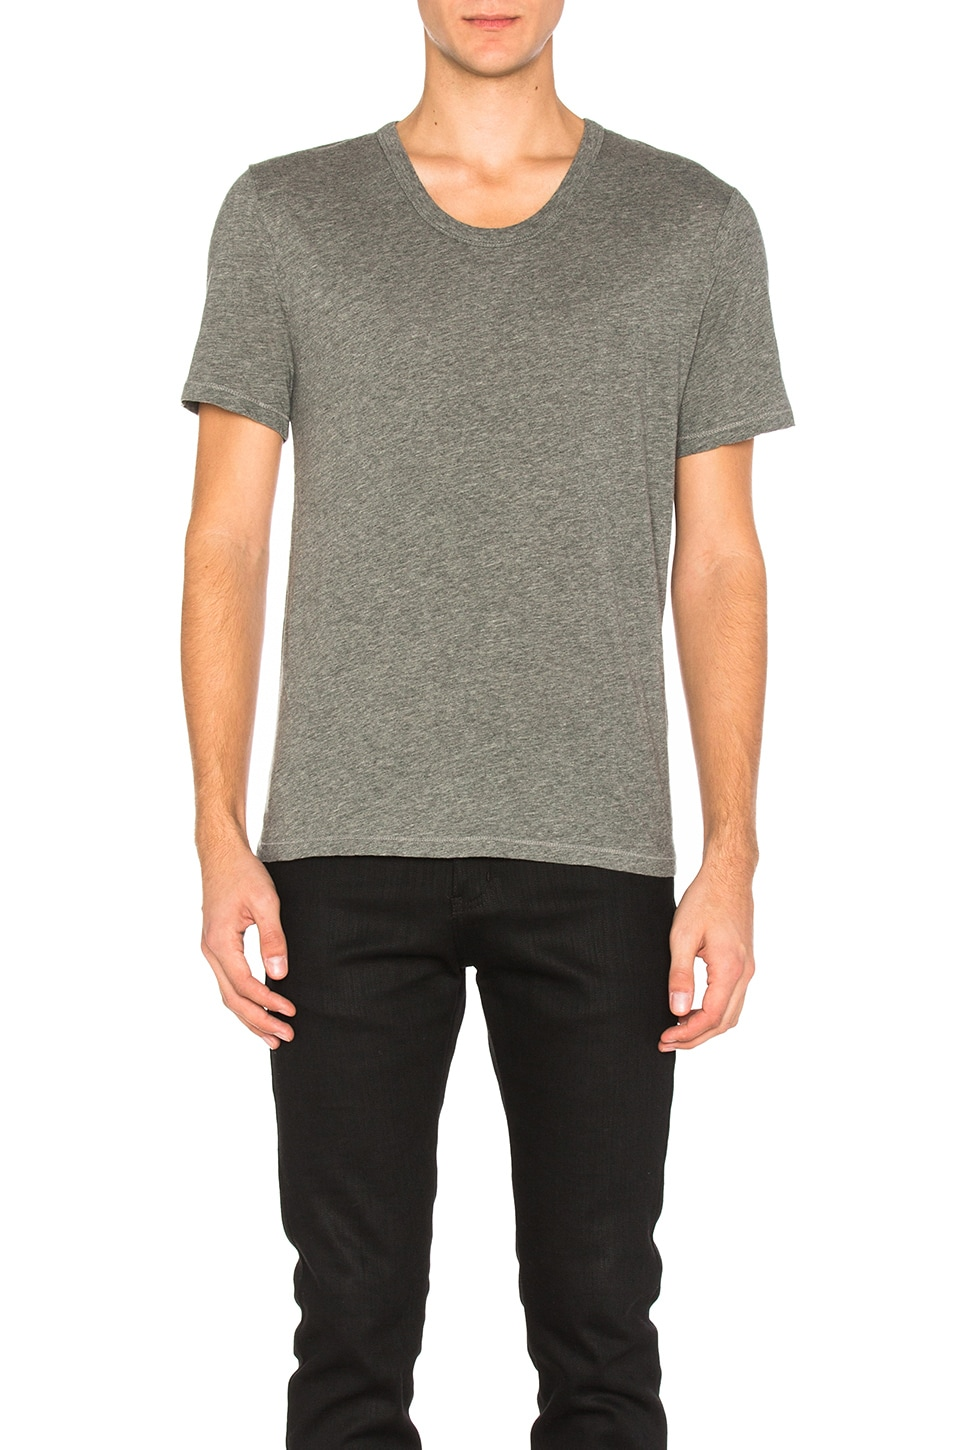 T by Alexander Wang T-SHIRT ENCOLURE DÉGAGÉE CLASSIC